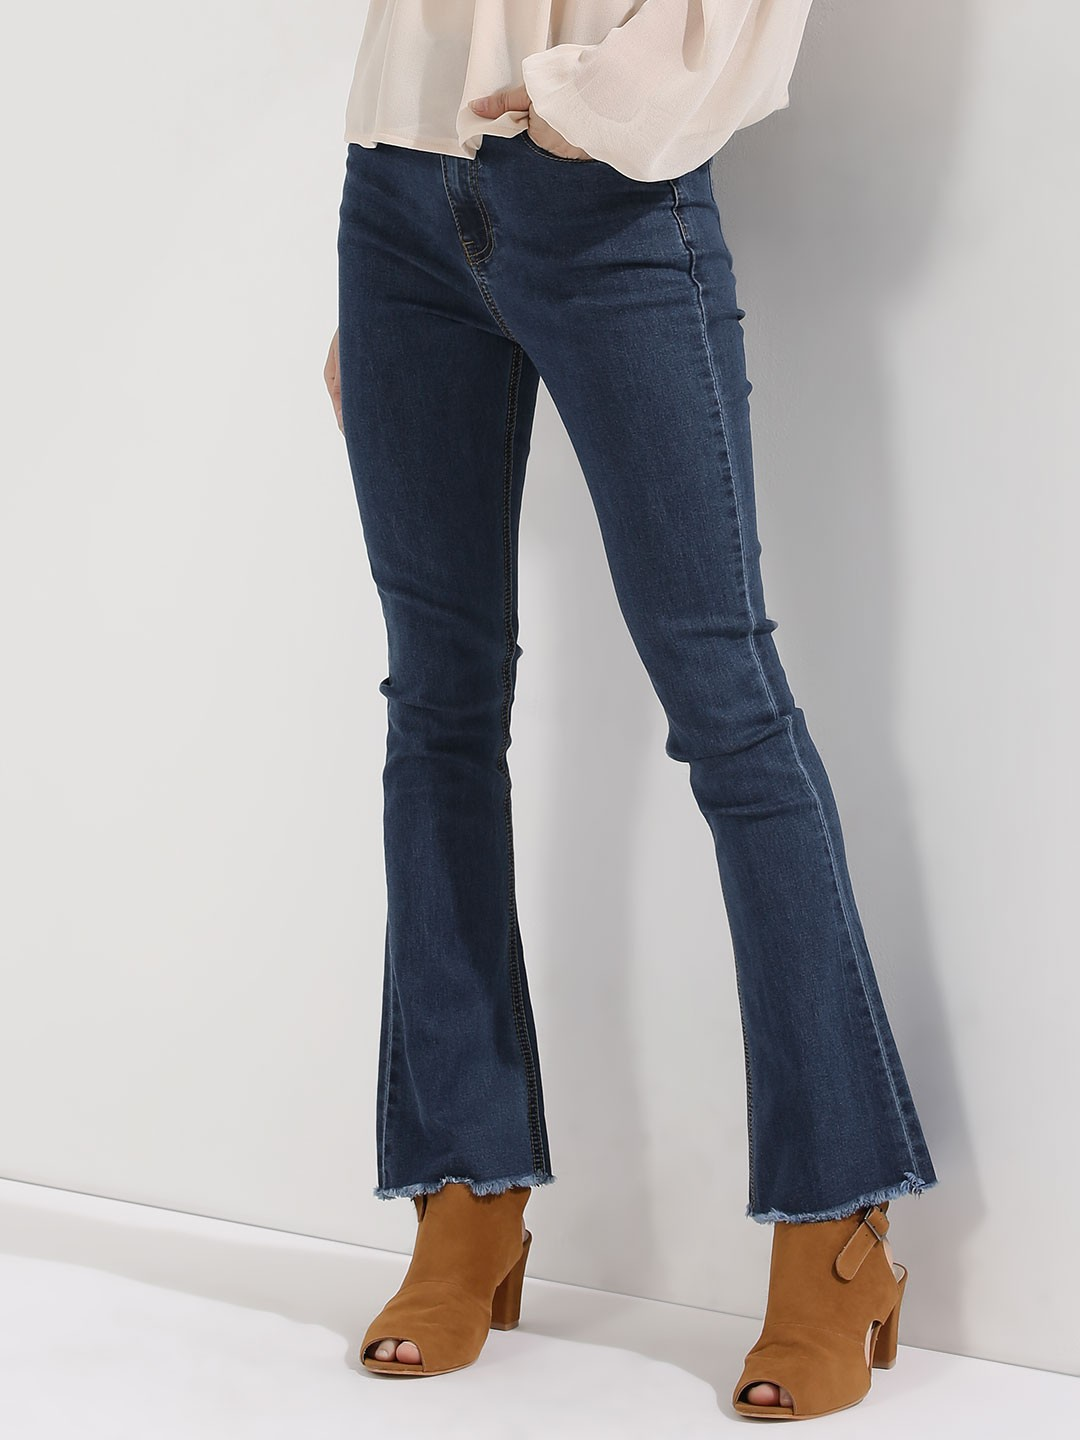 Buy MOMOKROM Cropped Hem High Rise Flare Jeans For Women - Women's ...